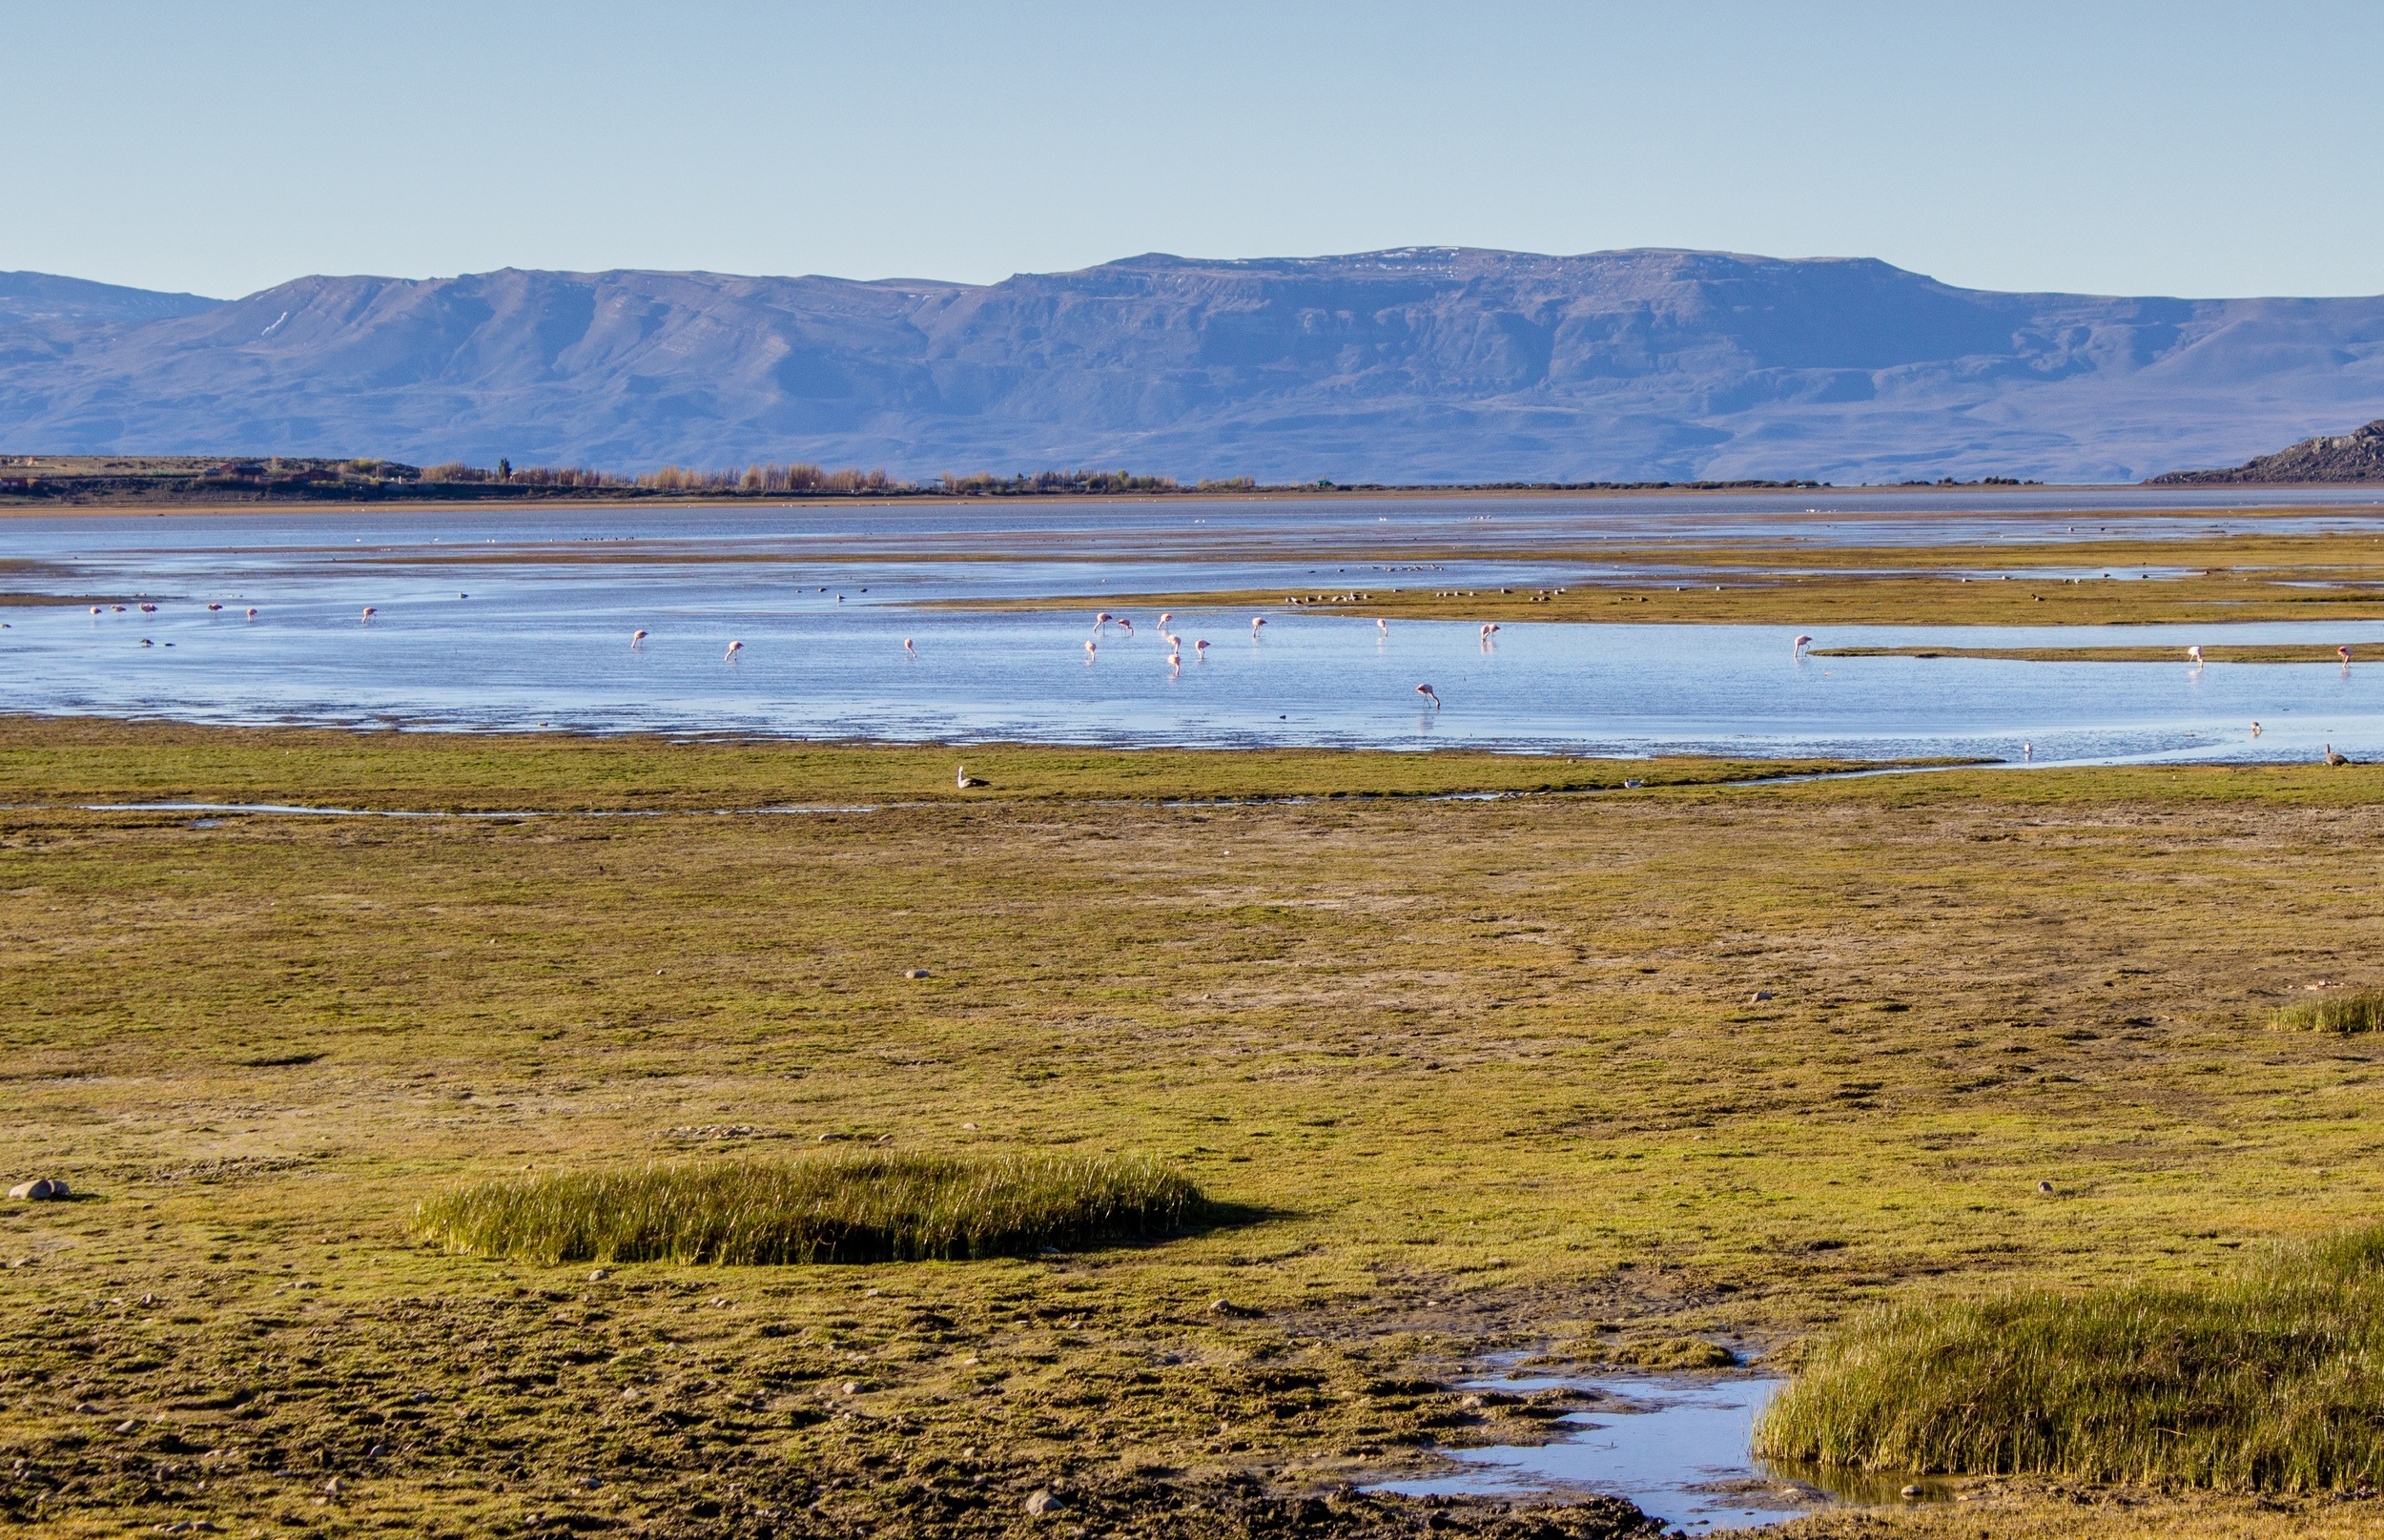 Flamingos in El Calafate